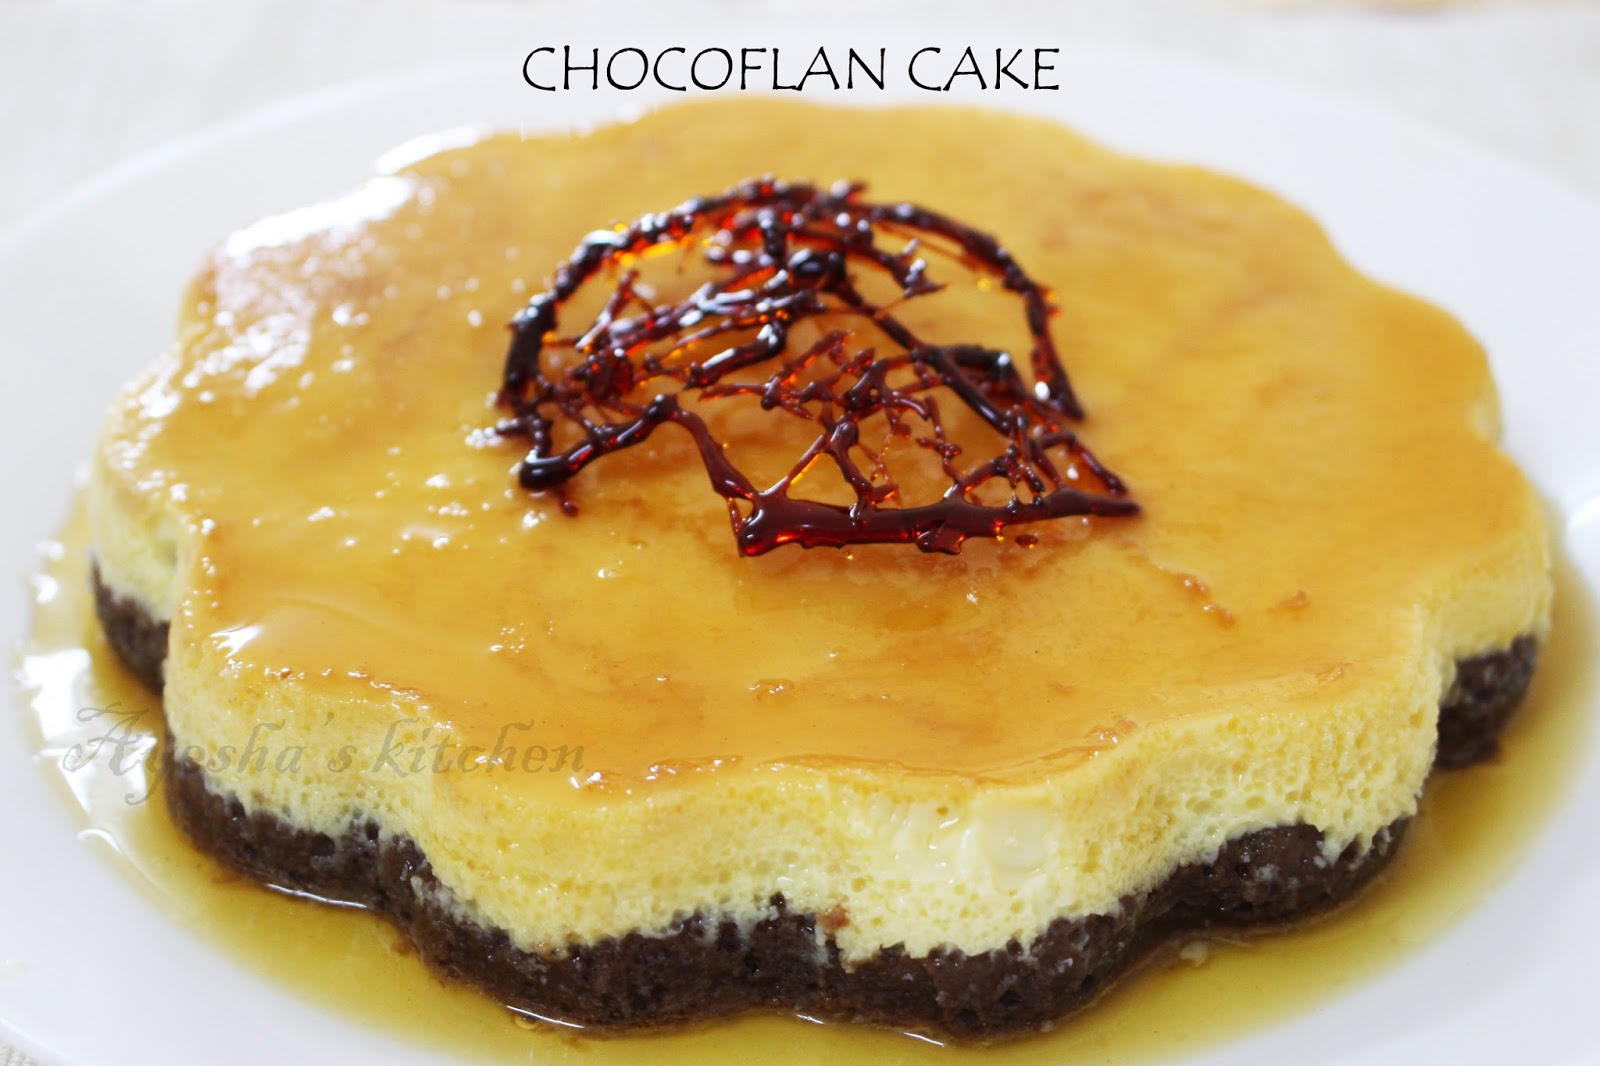 Easy Chocoflan Recipe With Cake Mix